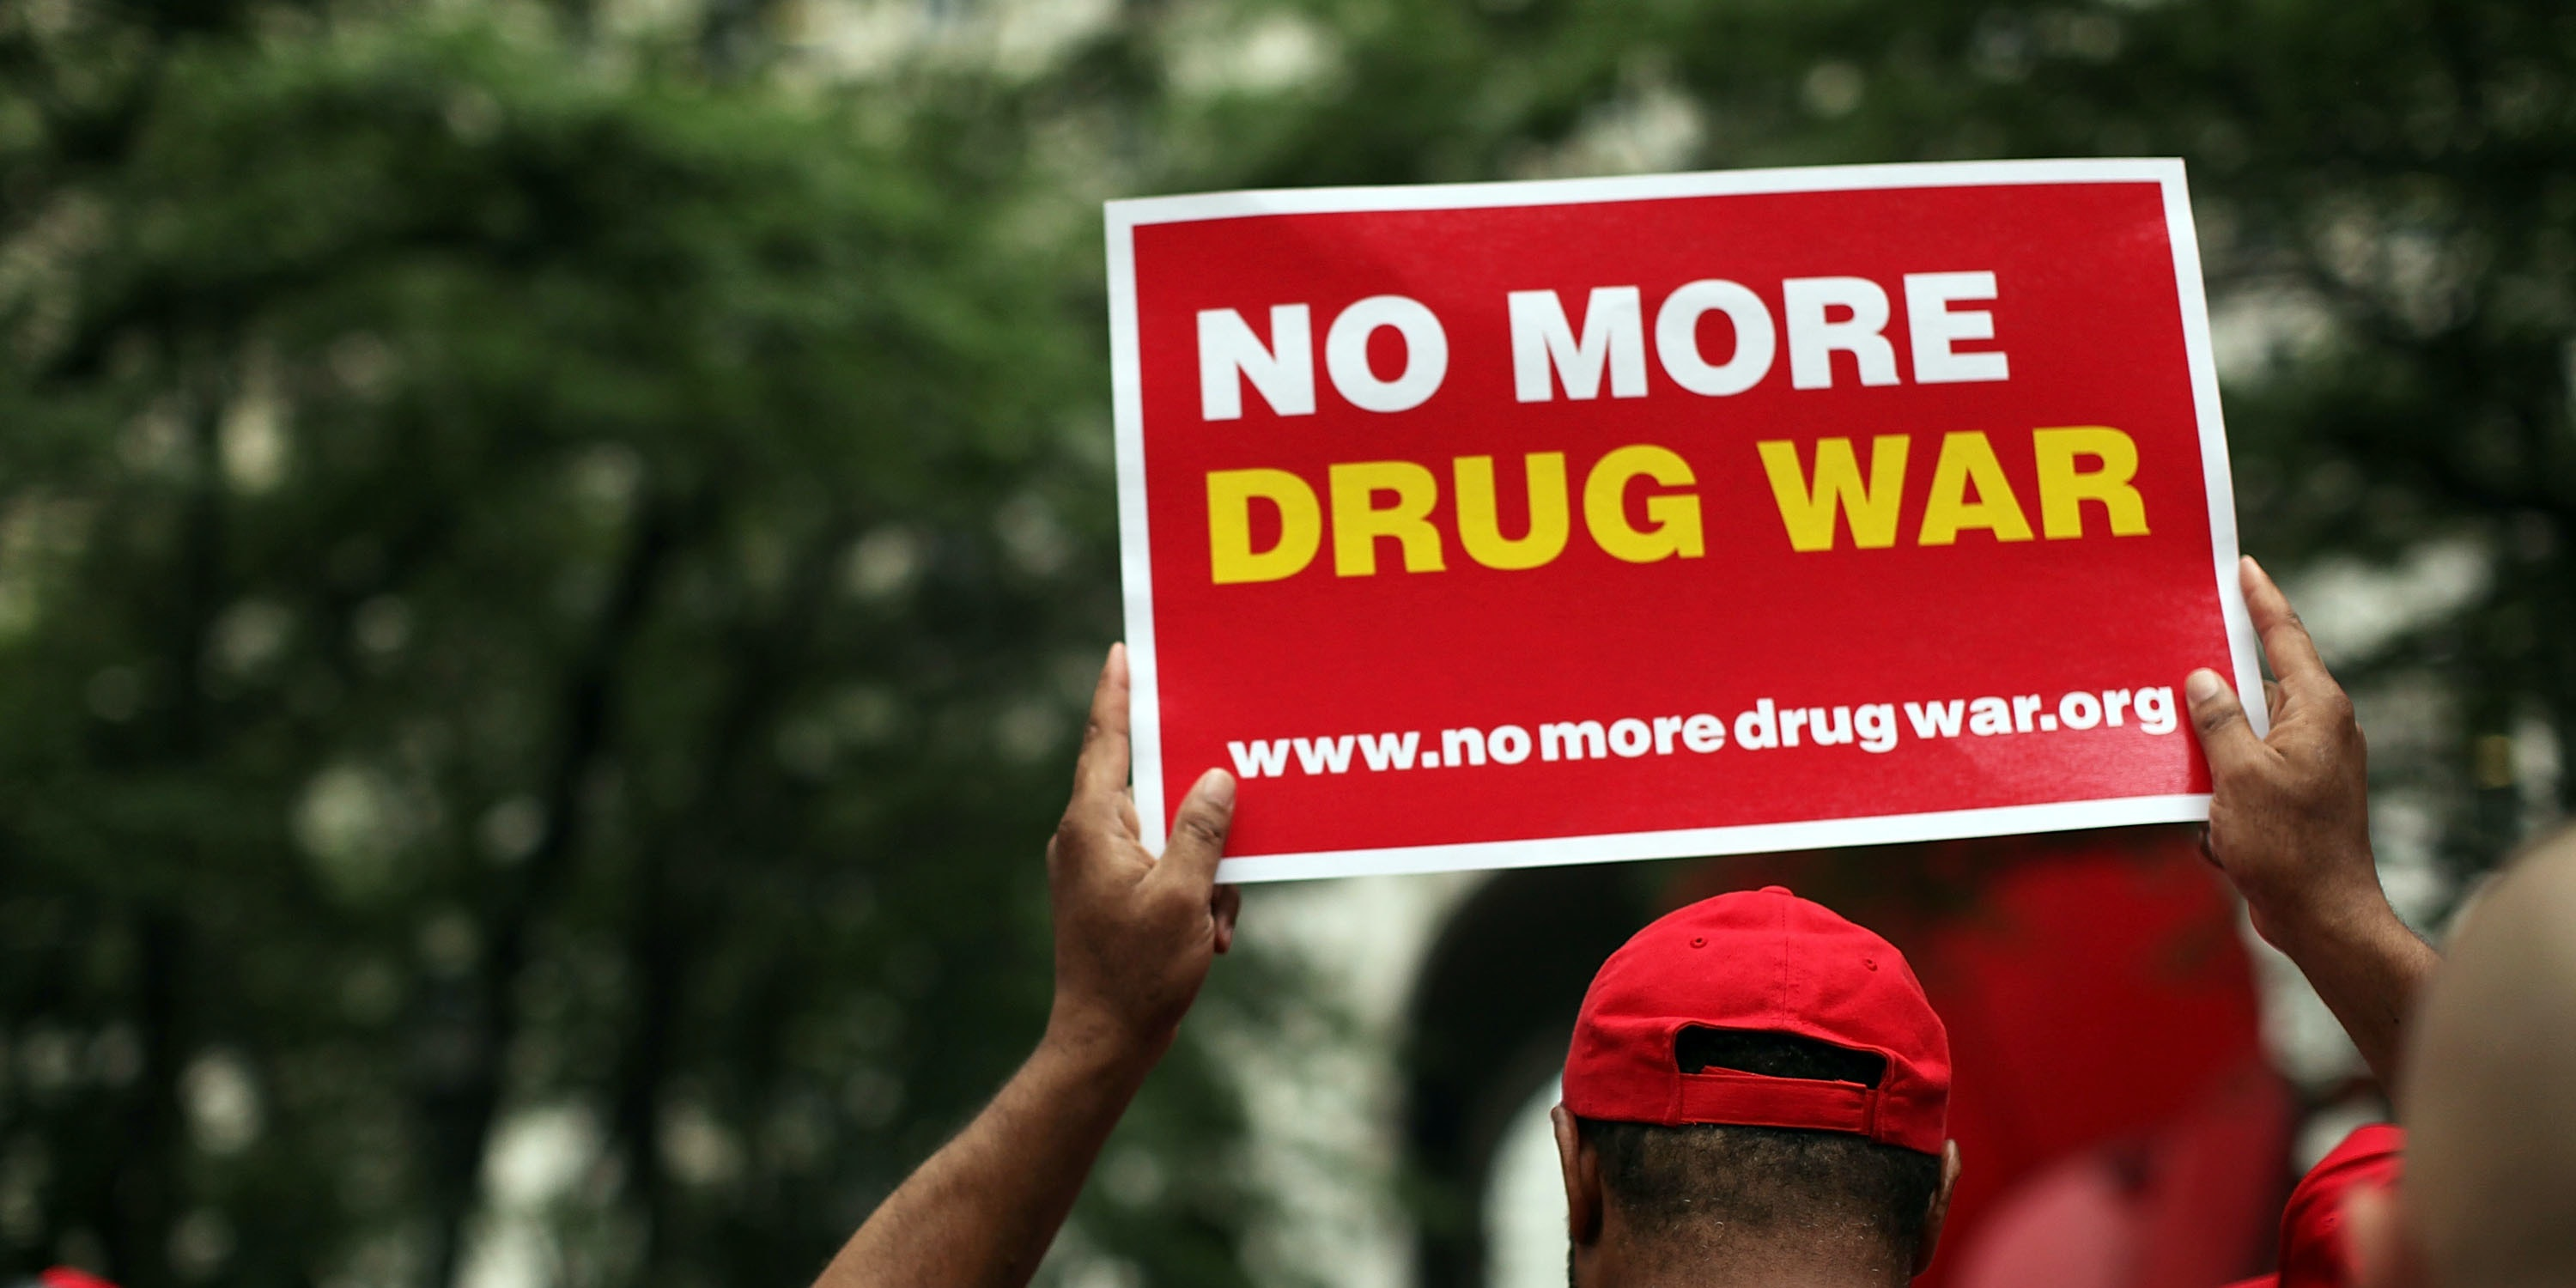 the united states should not legalize However, this should not be grounds for the outright and continued criminalization of the drug plenty of harmful substances are legal: alcohol, tobacco, and the hallucinogen salvia divinorum are all legally sold in the united states yet are not exactly what one would refer to as healthy.